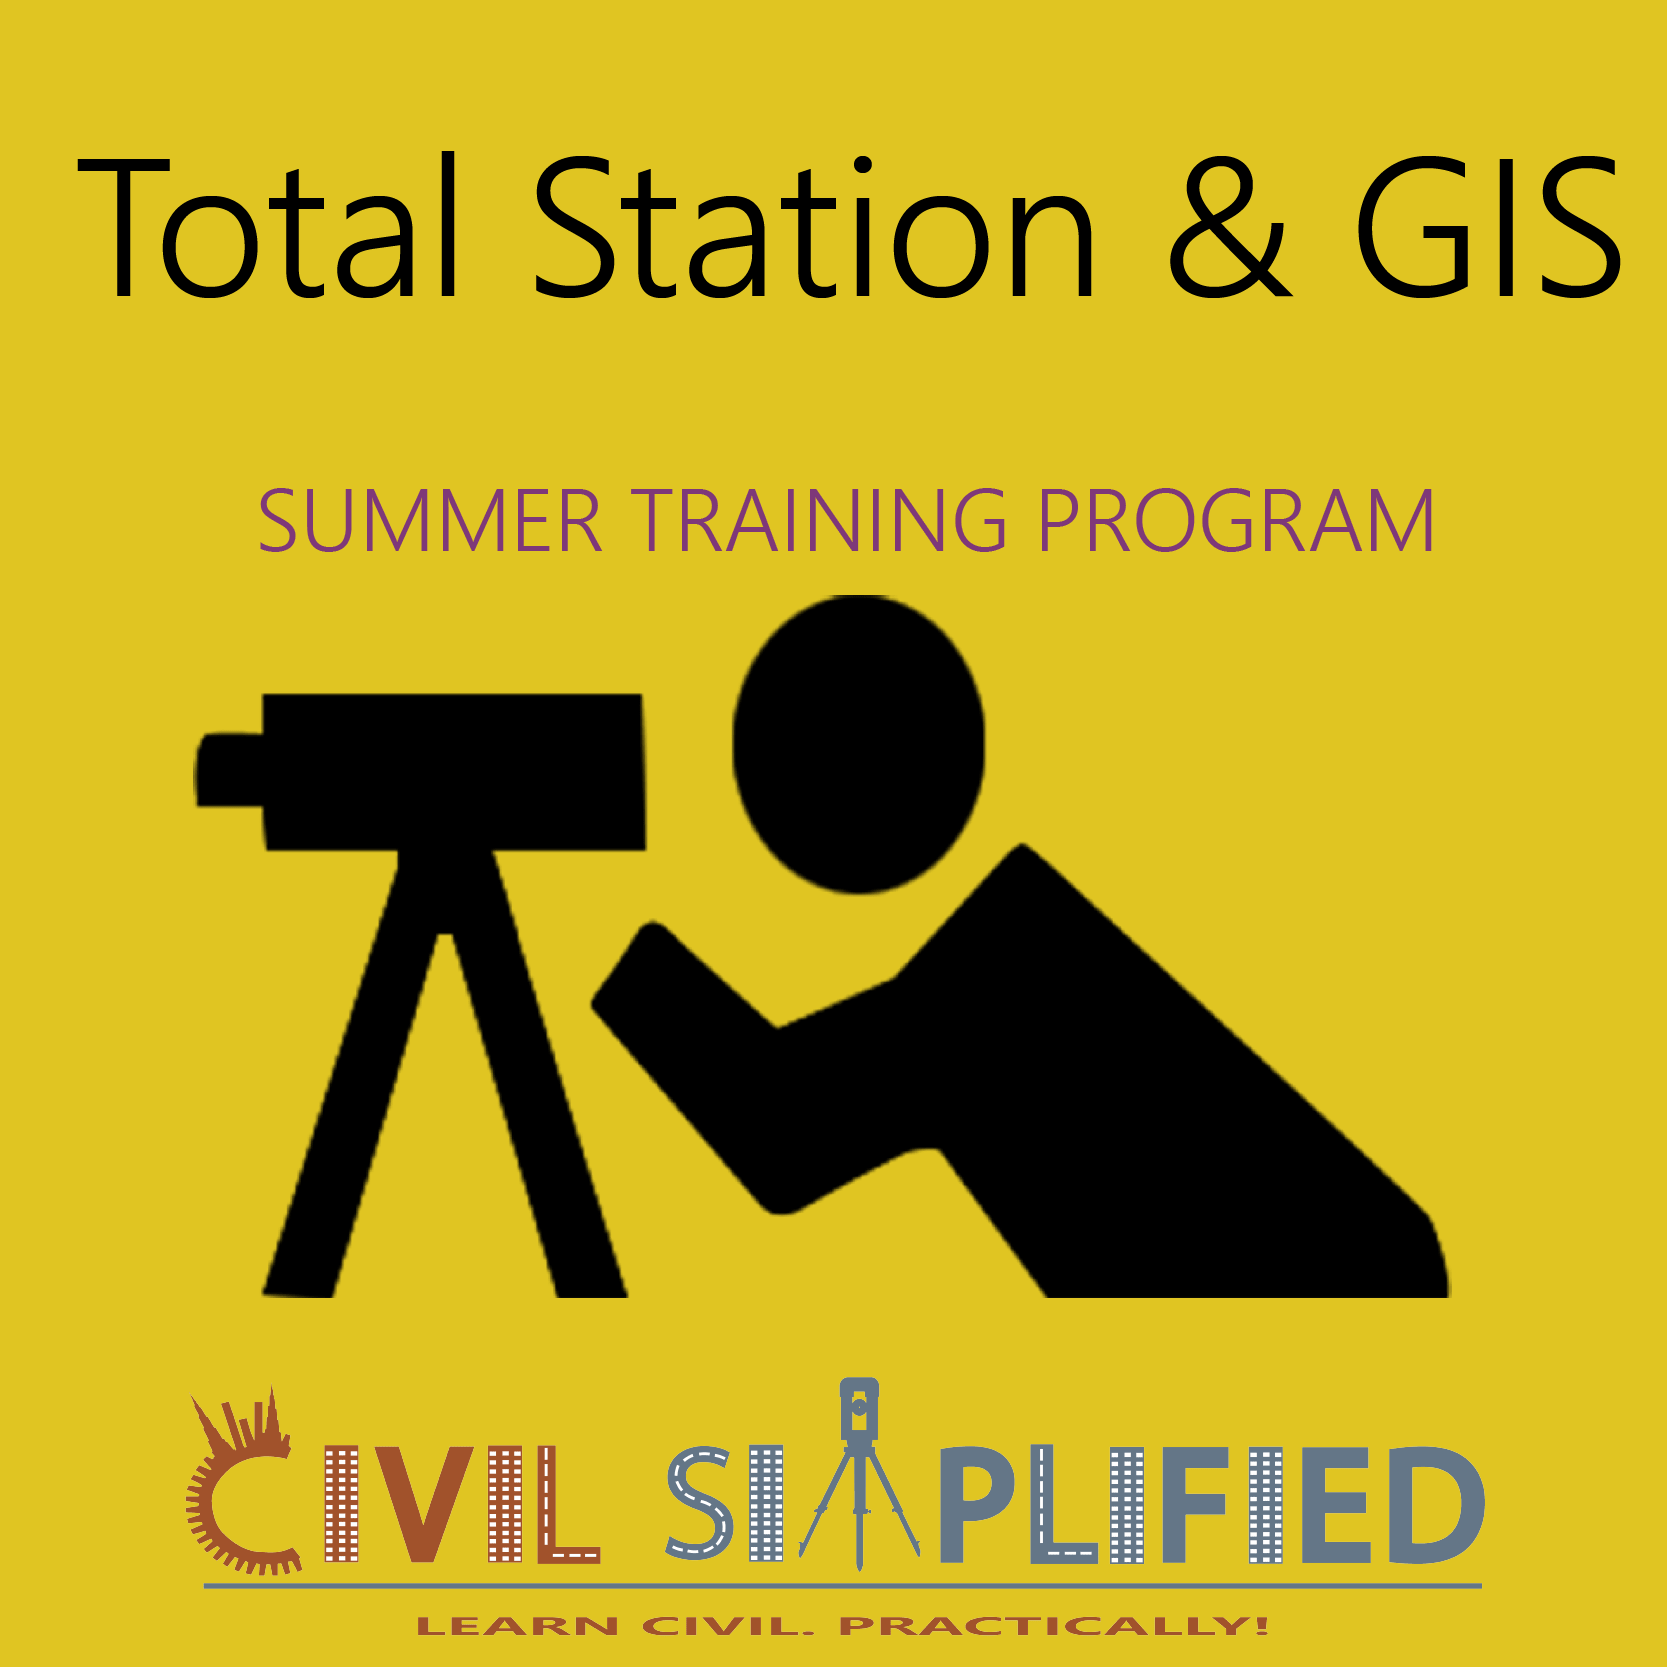 Summer Training Program in Civil Engineering - Total Station and GIS  at Skyfi Labs Center, Gate Forum, Guindy Workshop